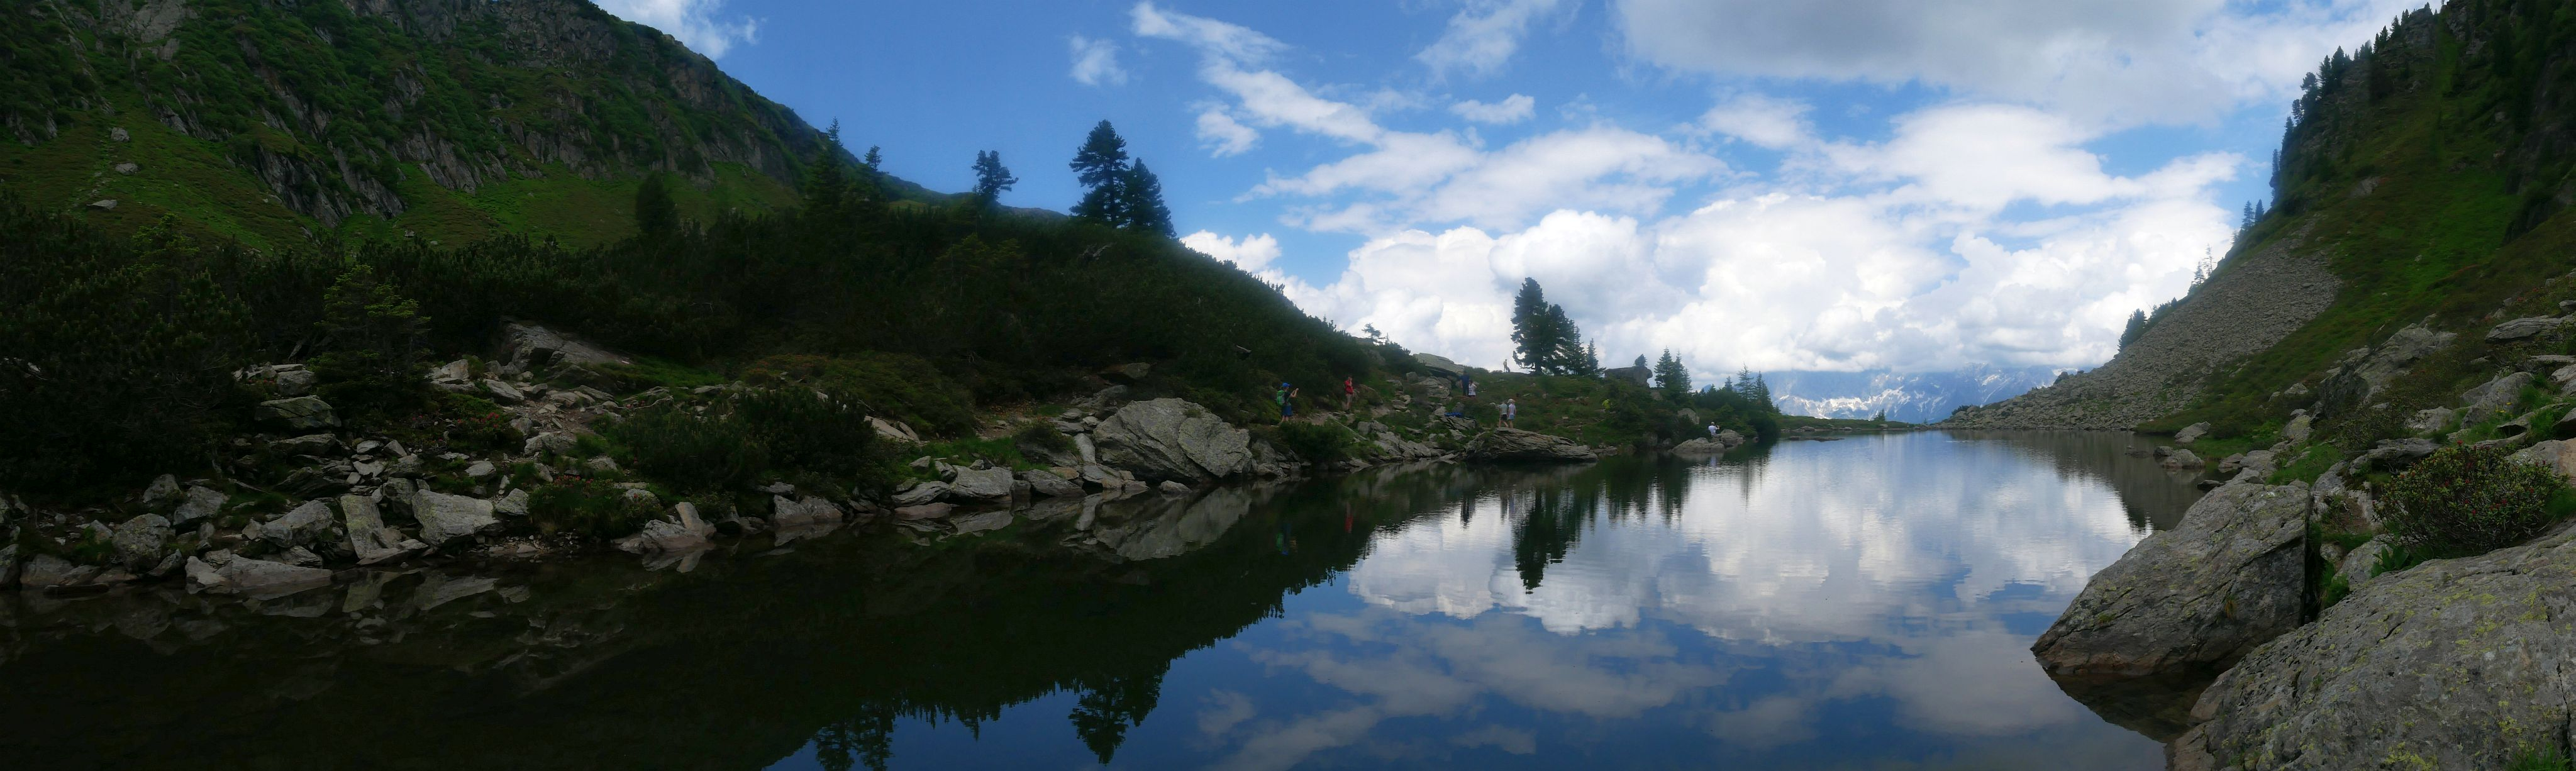 1.spiegelsee_panorama